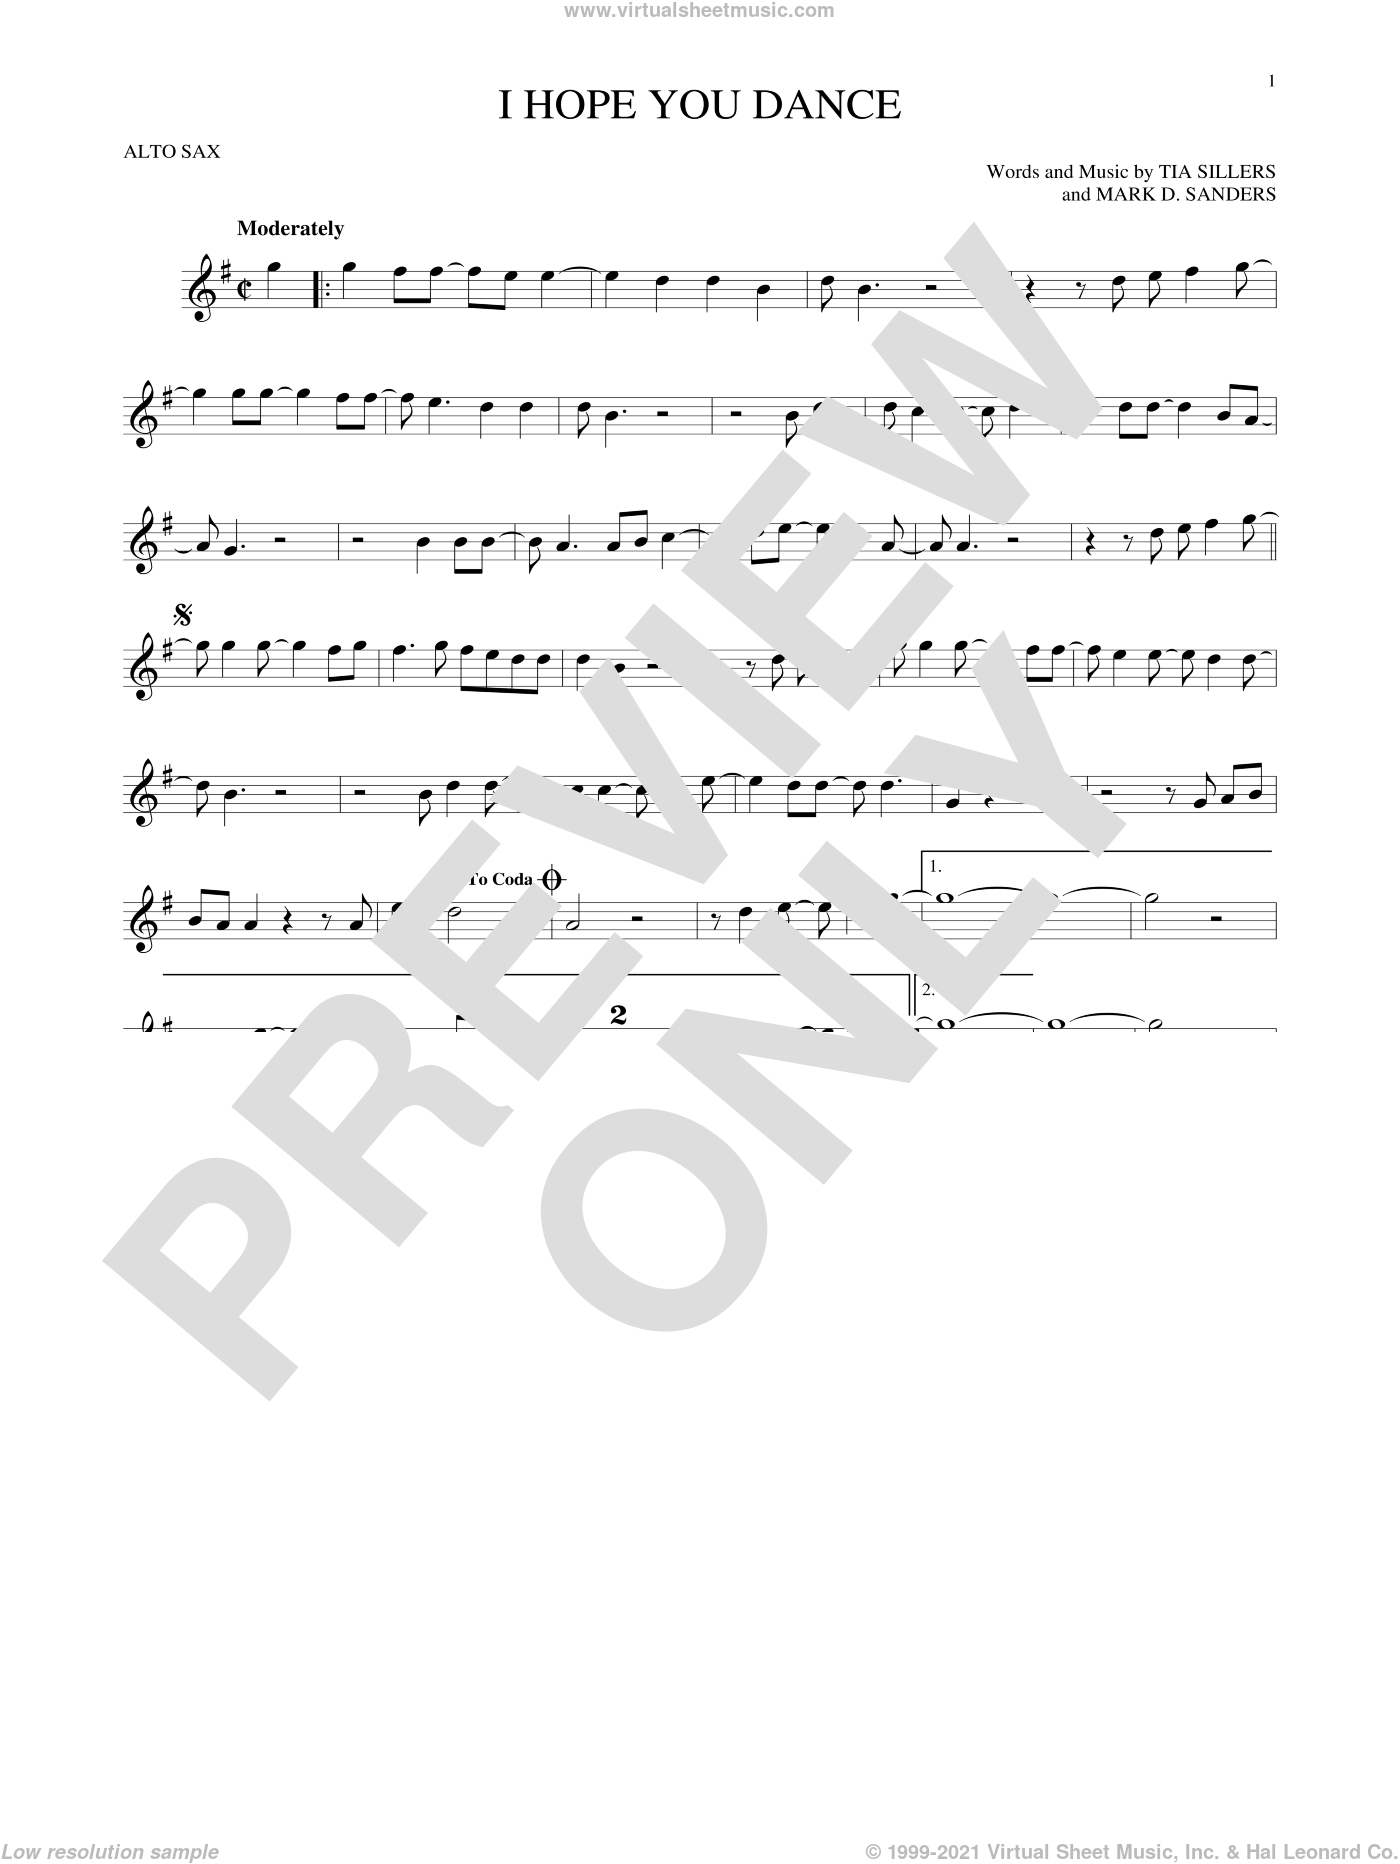 I Hope You Dance sheet music for alto saxophone solo by Lee Ann Womack with Sons of the Desert, Mark D. Sanders and Tia Sillers, intermediate skill level